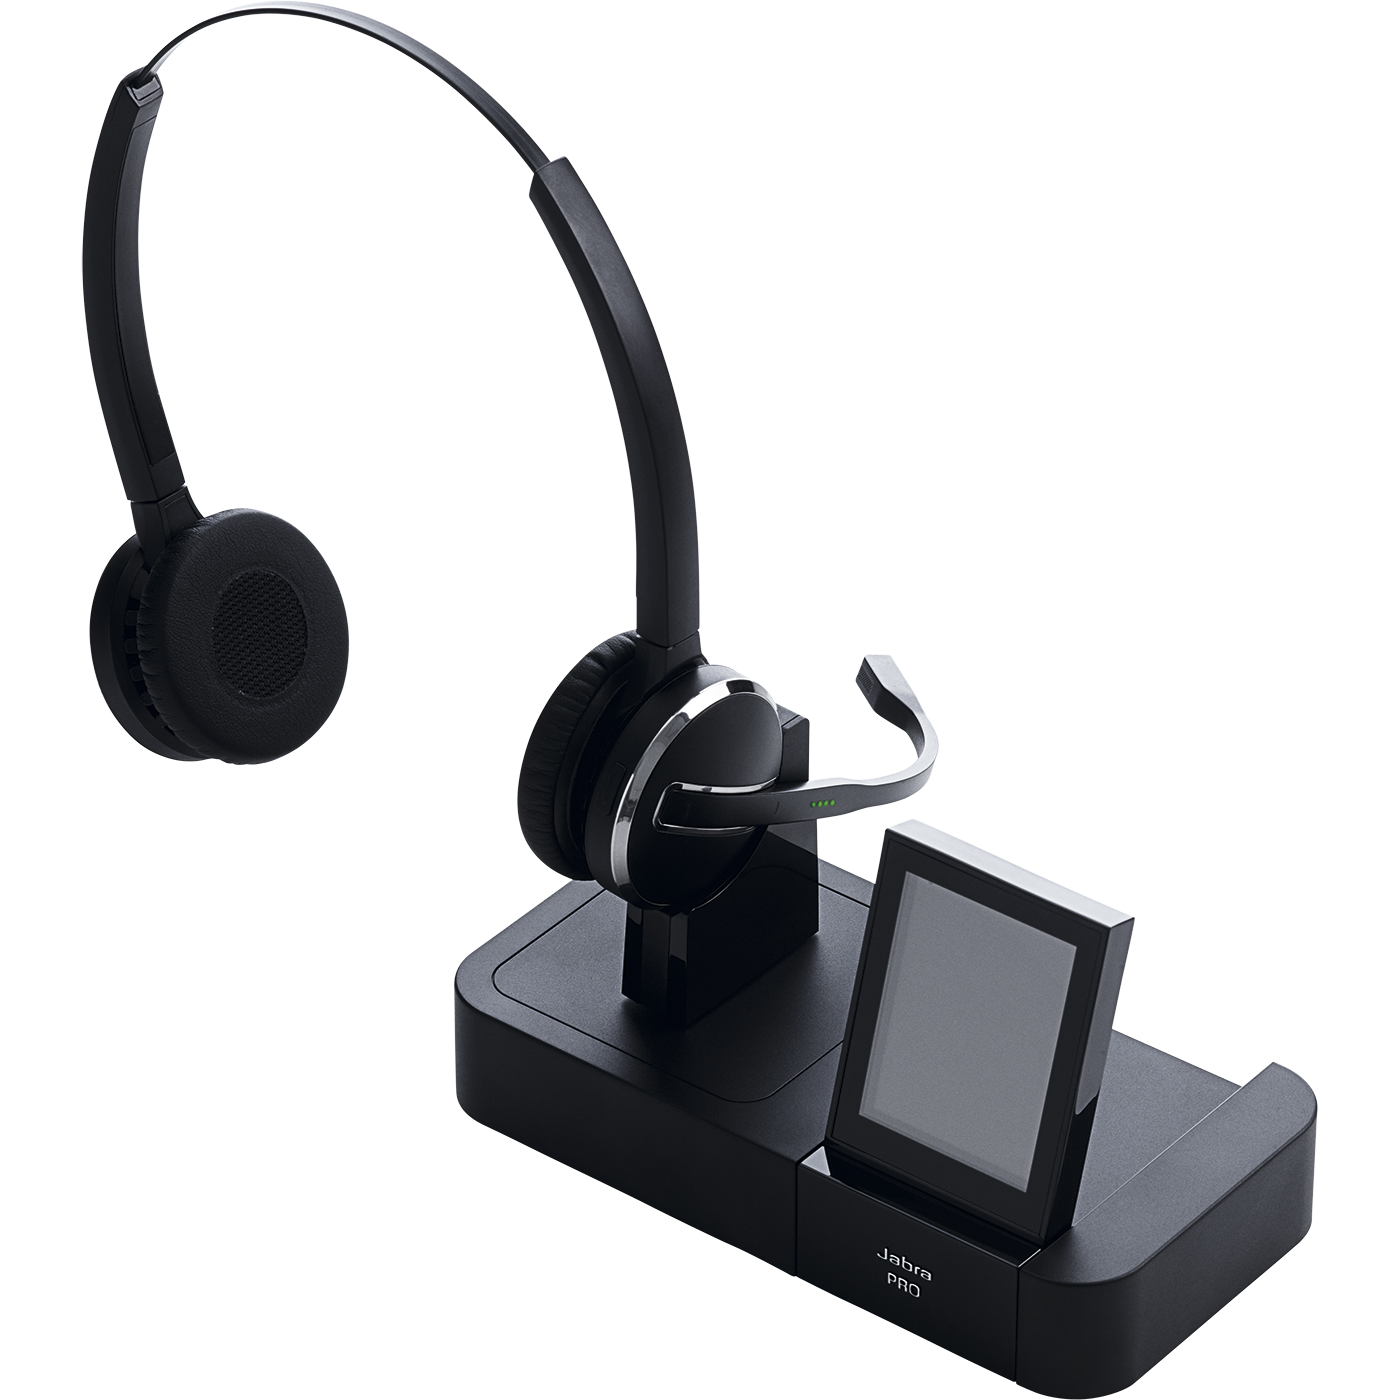 Jabra Pro 9460 Duo Wireless Headset With Touchscreen For: Aquila Technology : 9460-29-707-103